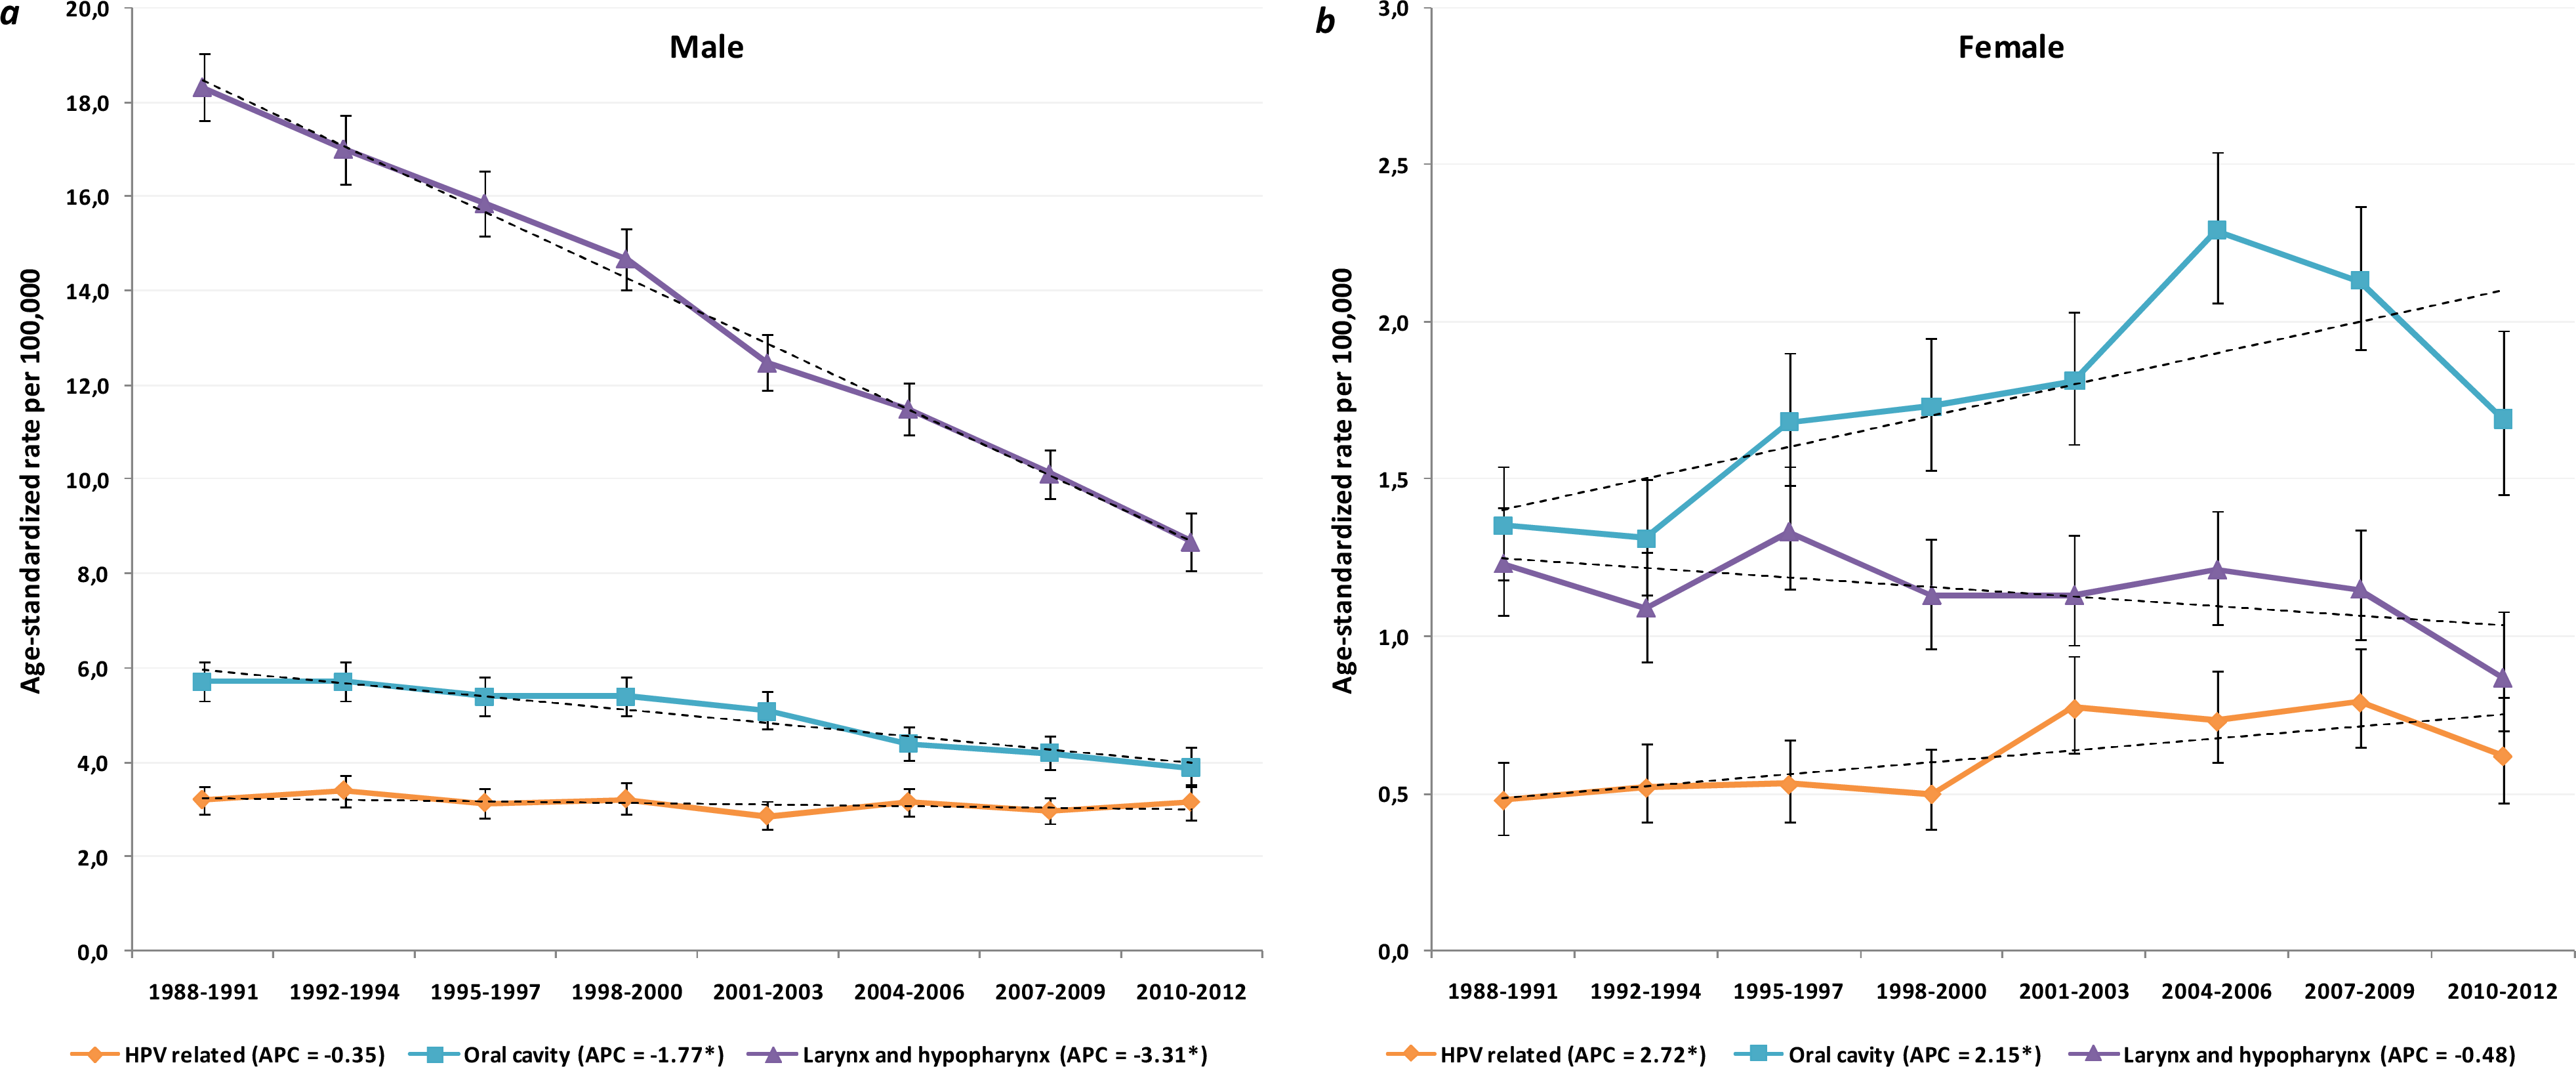 Incidence of hpv related head and neck cancer